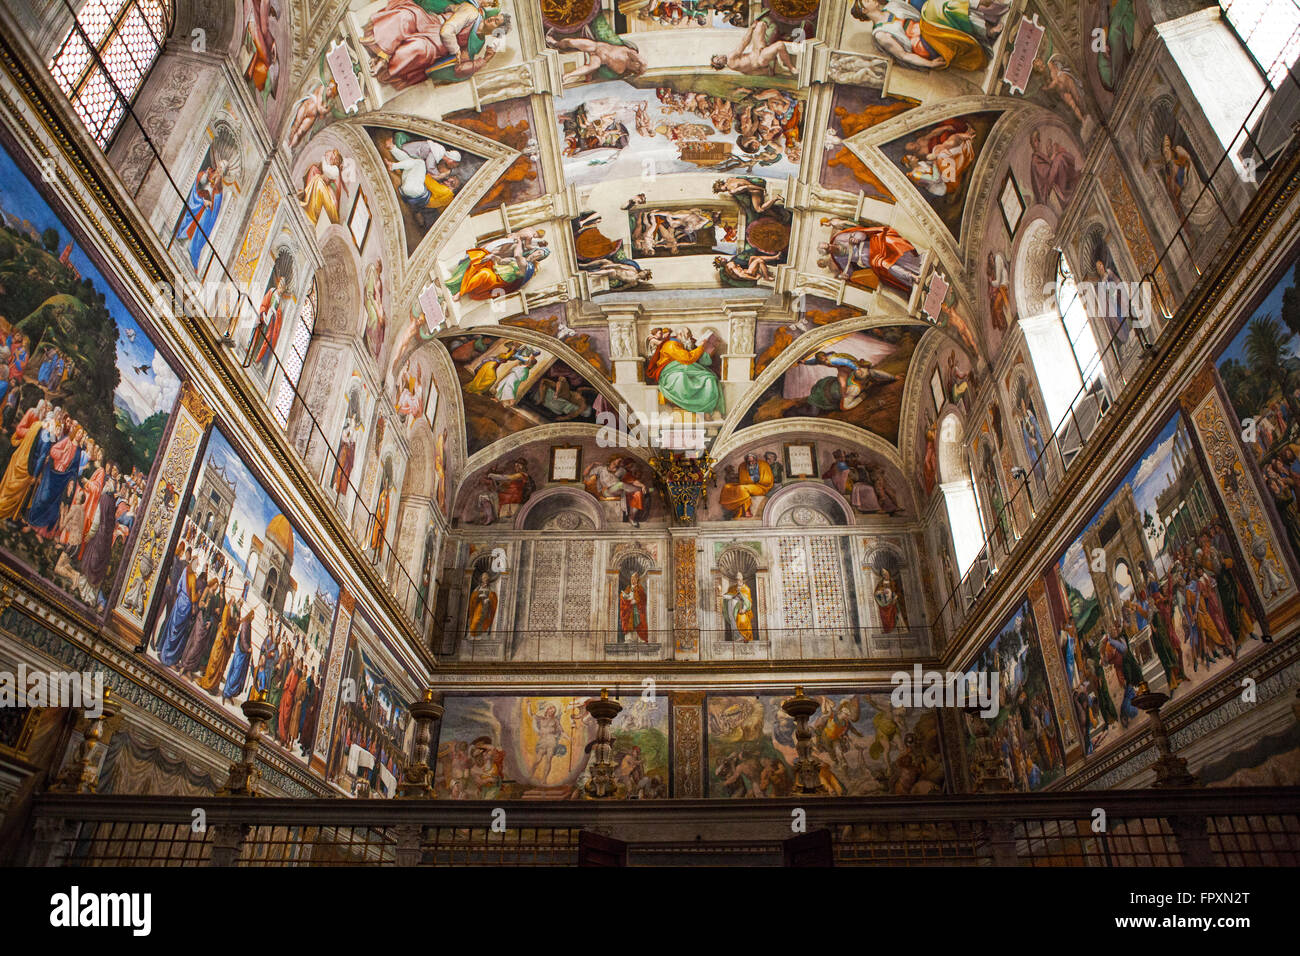 VATICAN CITY, ROME - MARCH 02, 2016: Interior and architectural details of the Sistine chapel, March 02, 2016, Vatican - Stock Image